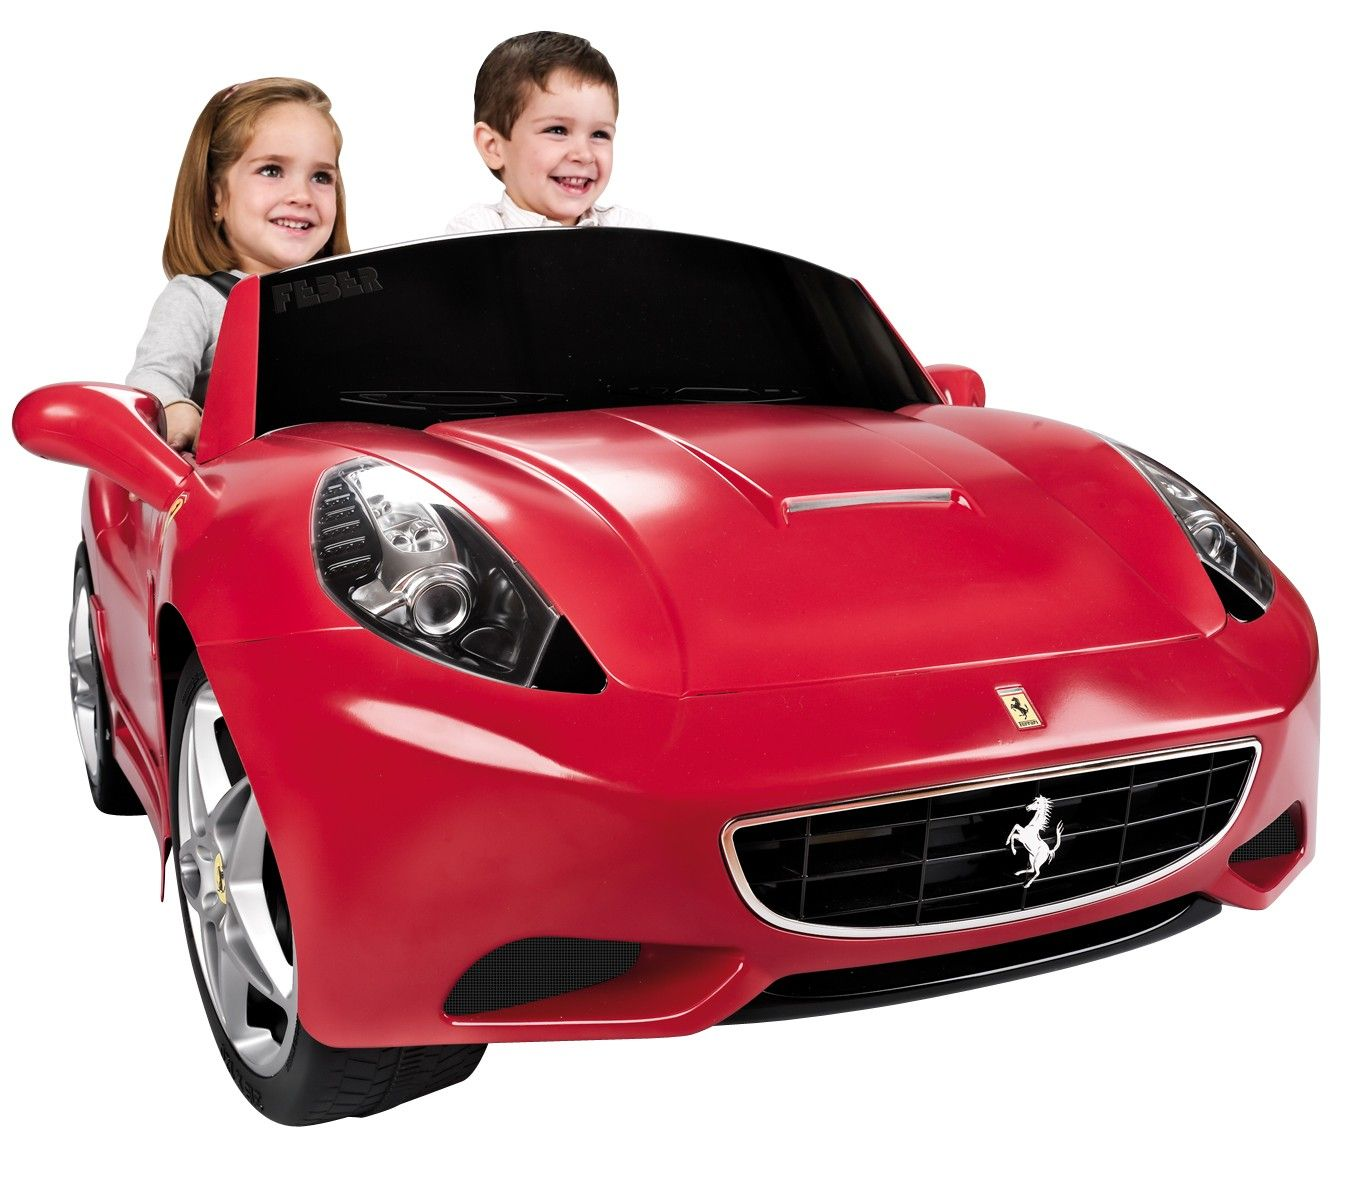 licensed 12v feber ferrari ride on electric car kids electric cars little cars